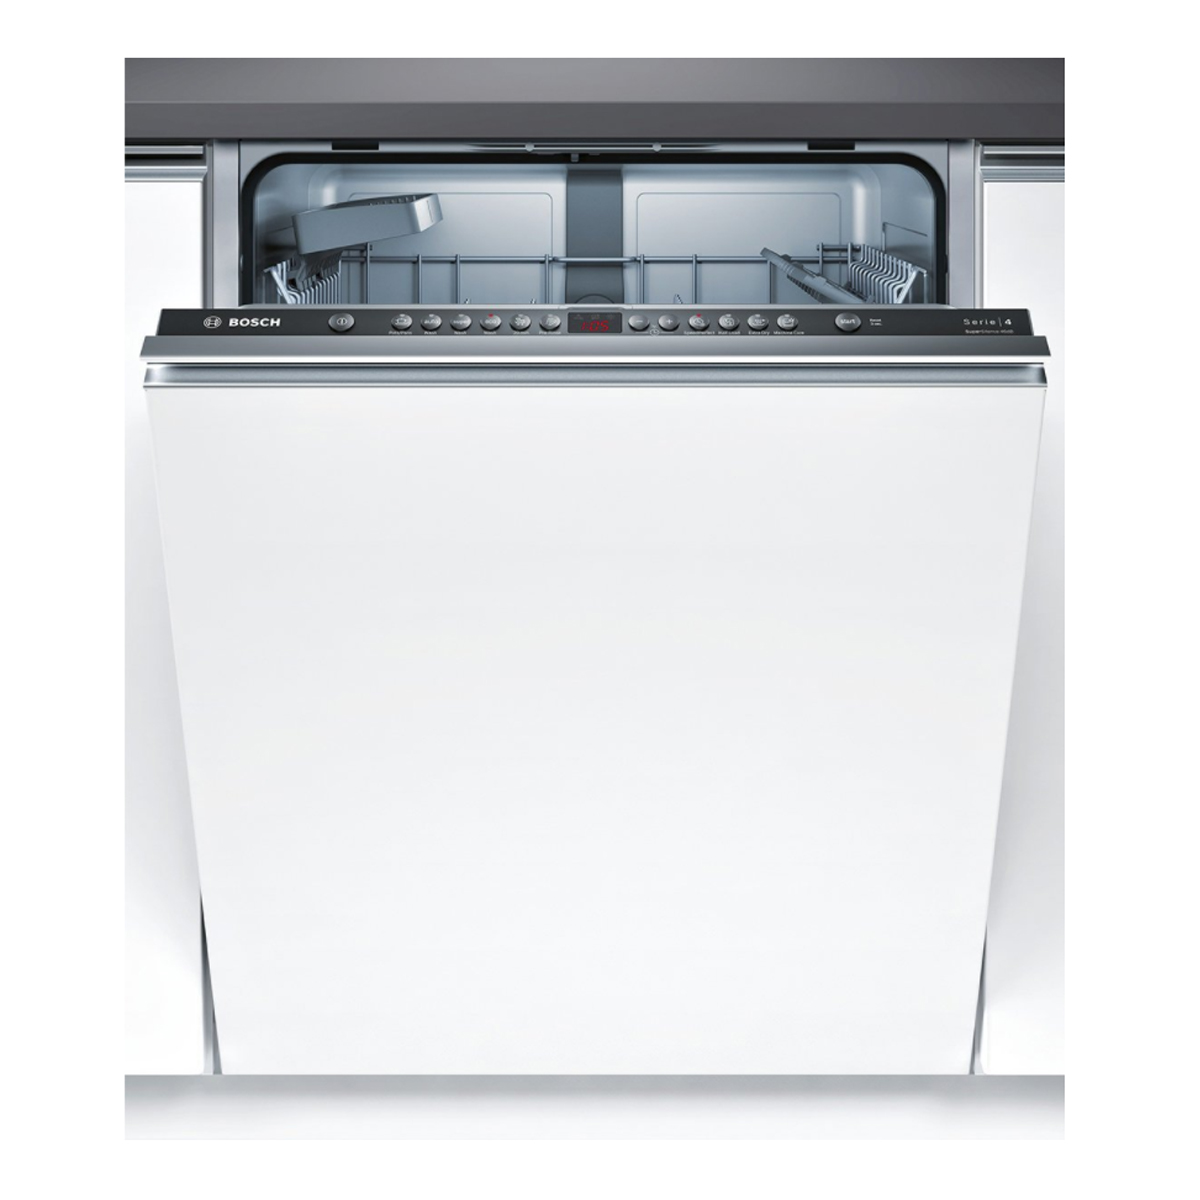 bosch smv46gx01a serie 4 fully integrated dishwasher up. Black Bedroom Furniture Sets. Home Design Ideas